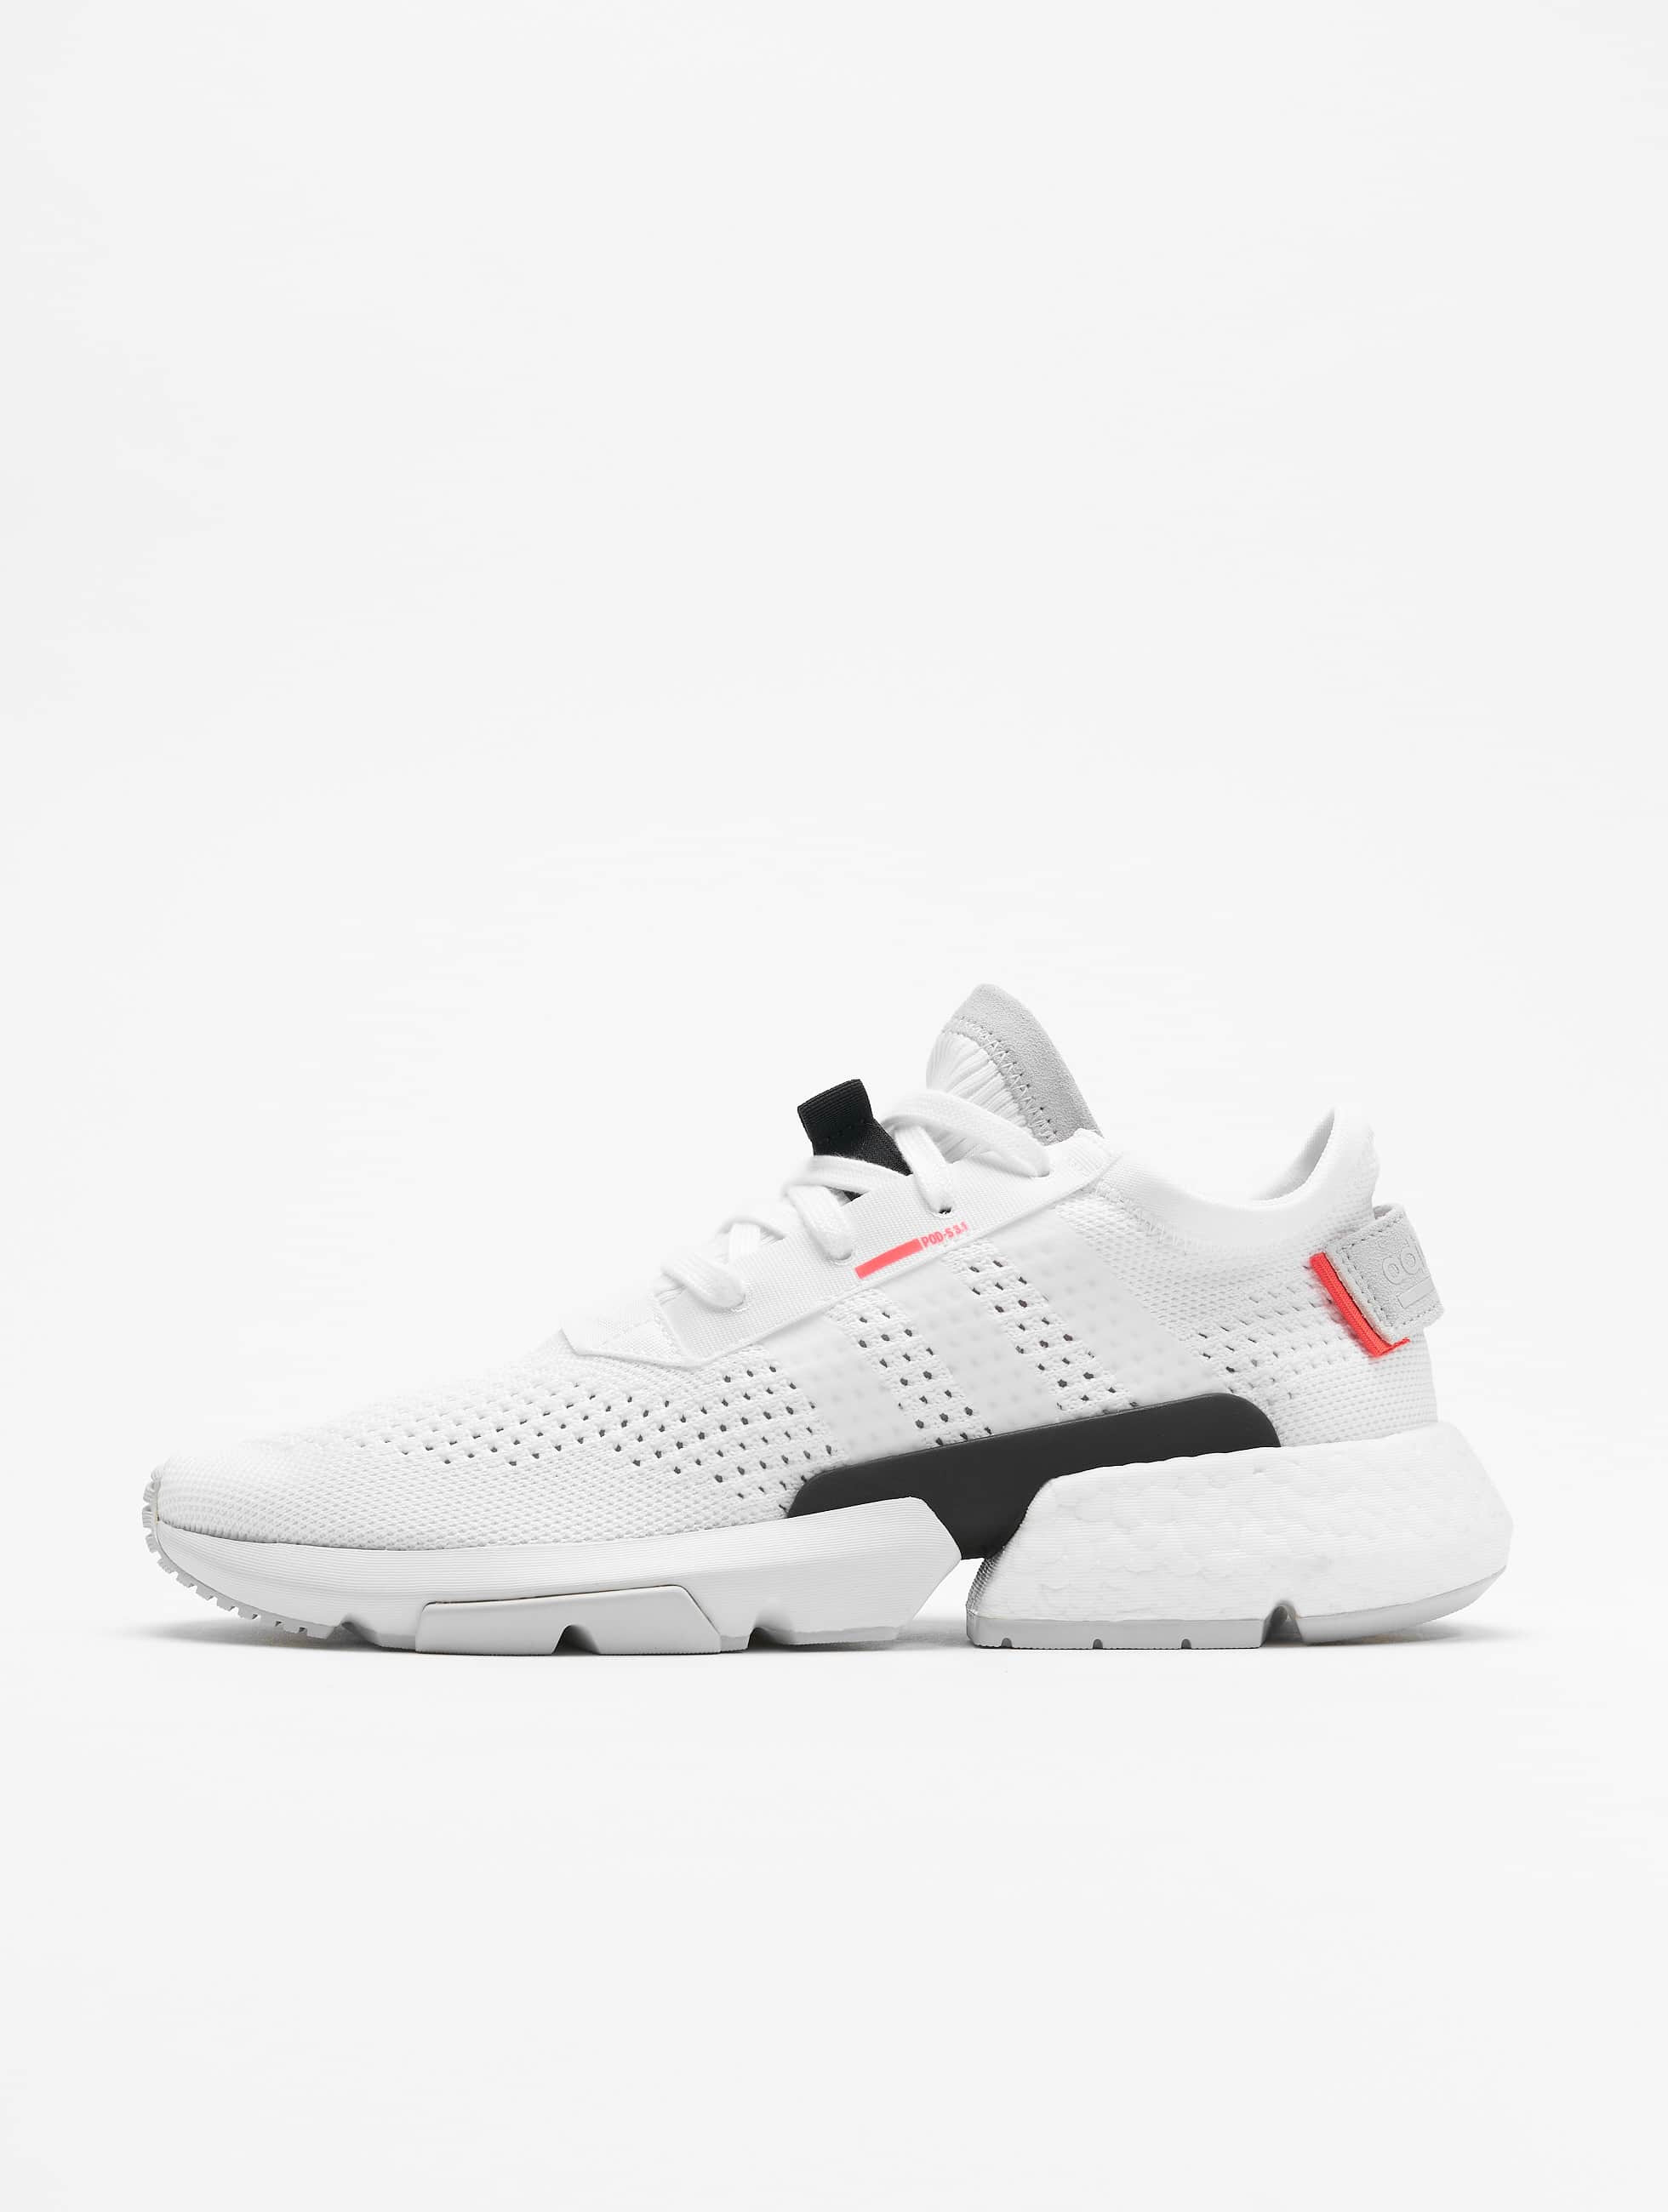 adidas Originals Pod S3.1 Sneakers Footwear WhiteFootwear WhiteShock Red